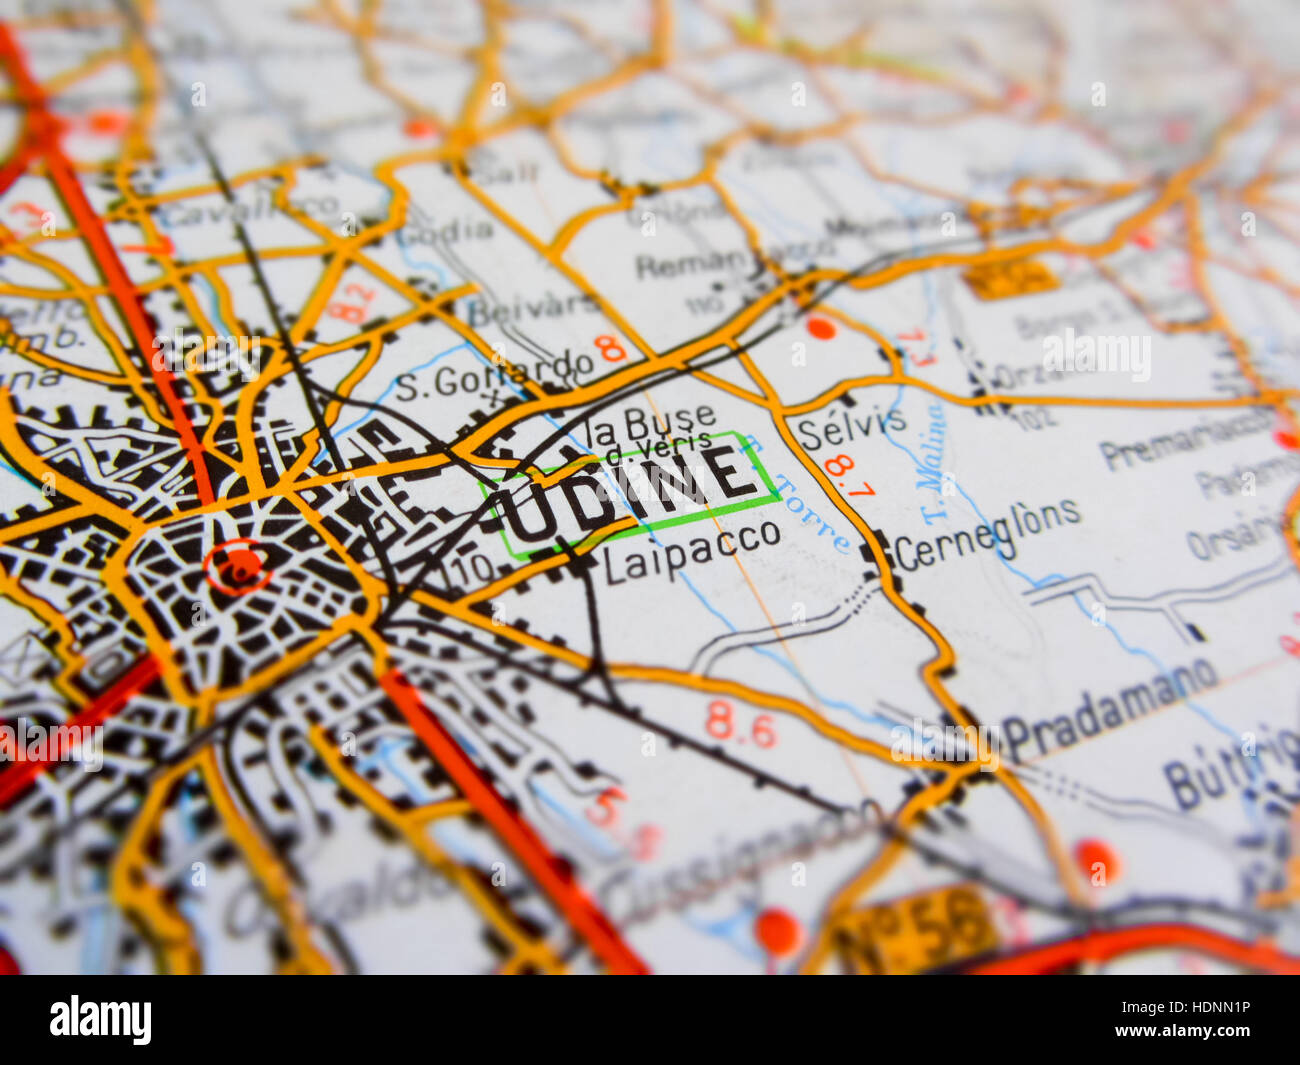 Udine City Over A Road Map ITALY Stock Photo Royalty Free Image - Udine map